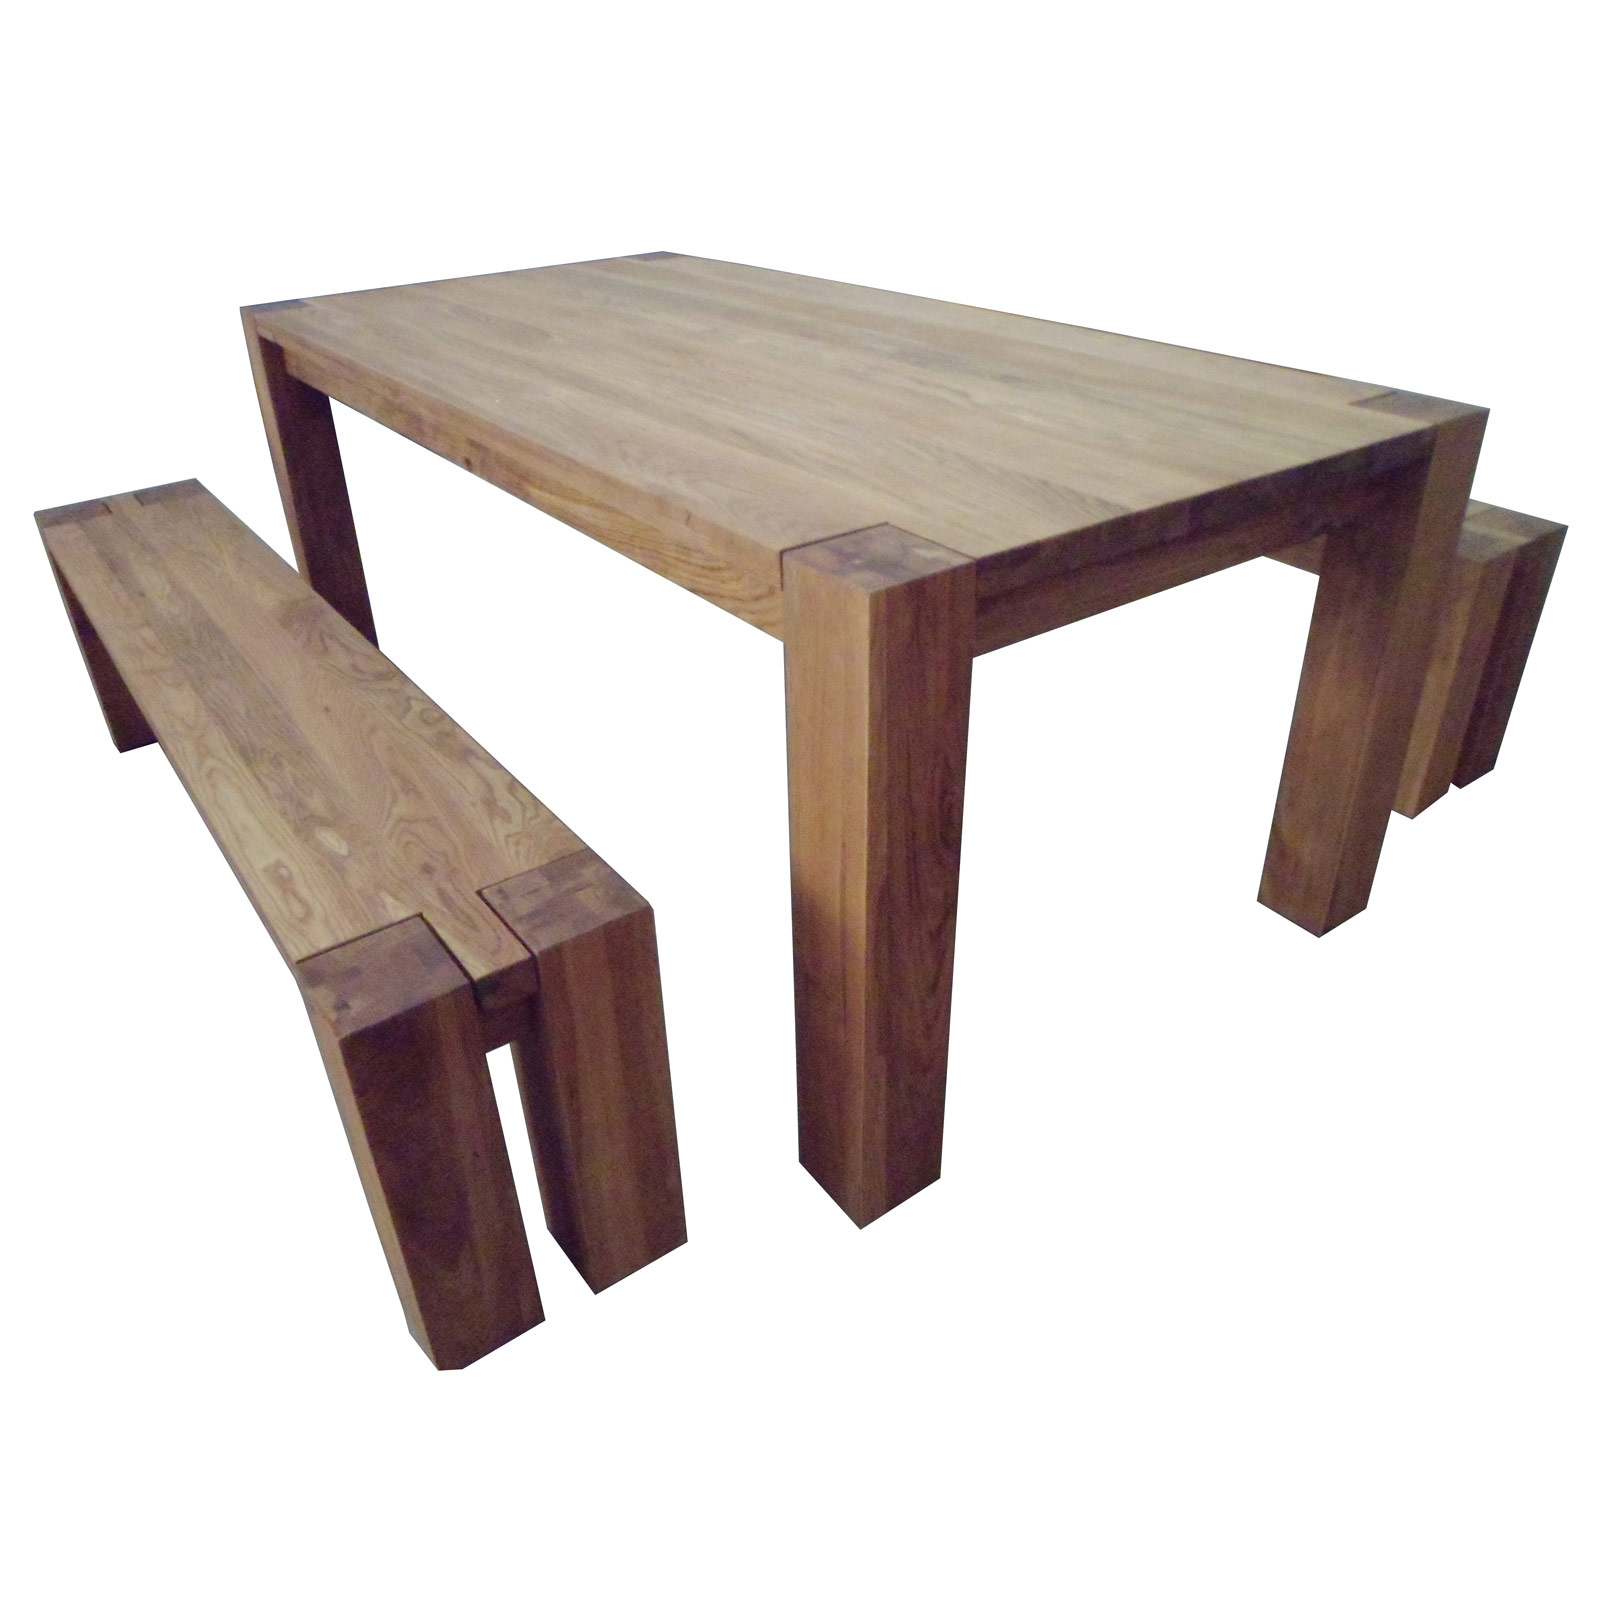 Rectangular Dining Table With Bench: Braemar Rectangular Oak Wood Dining Kitchen Table